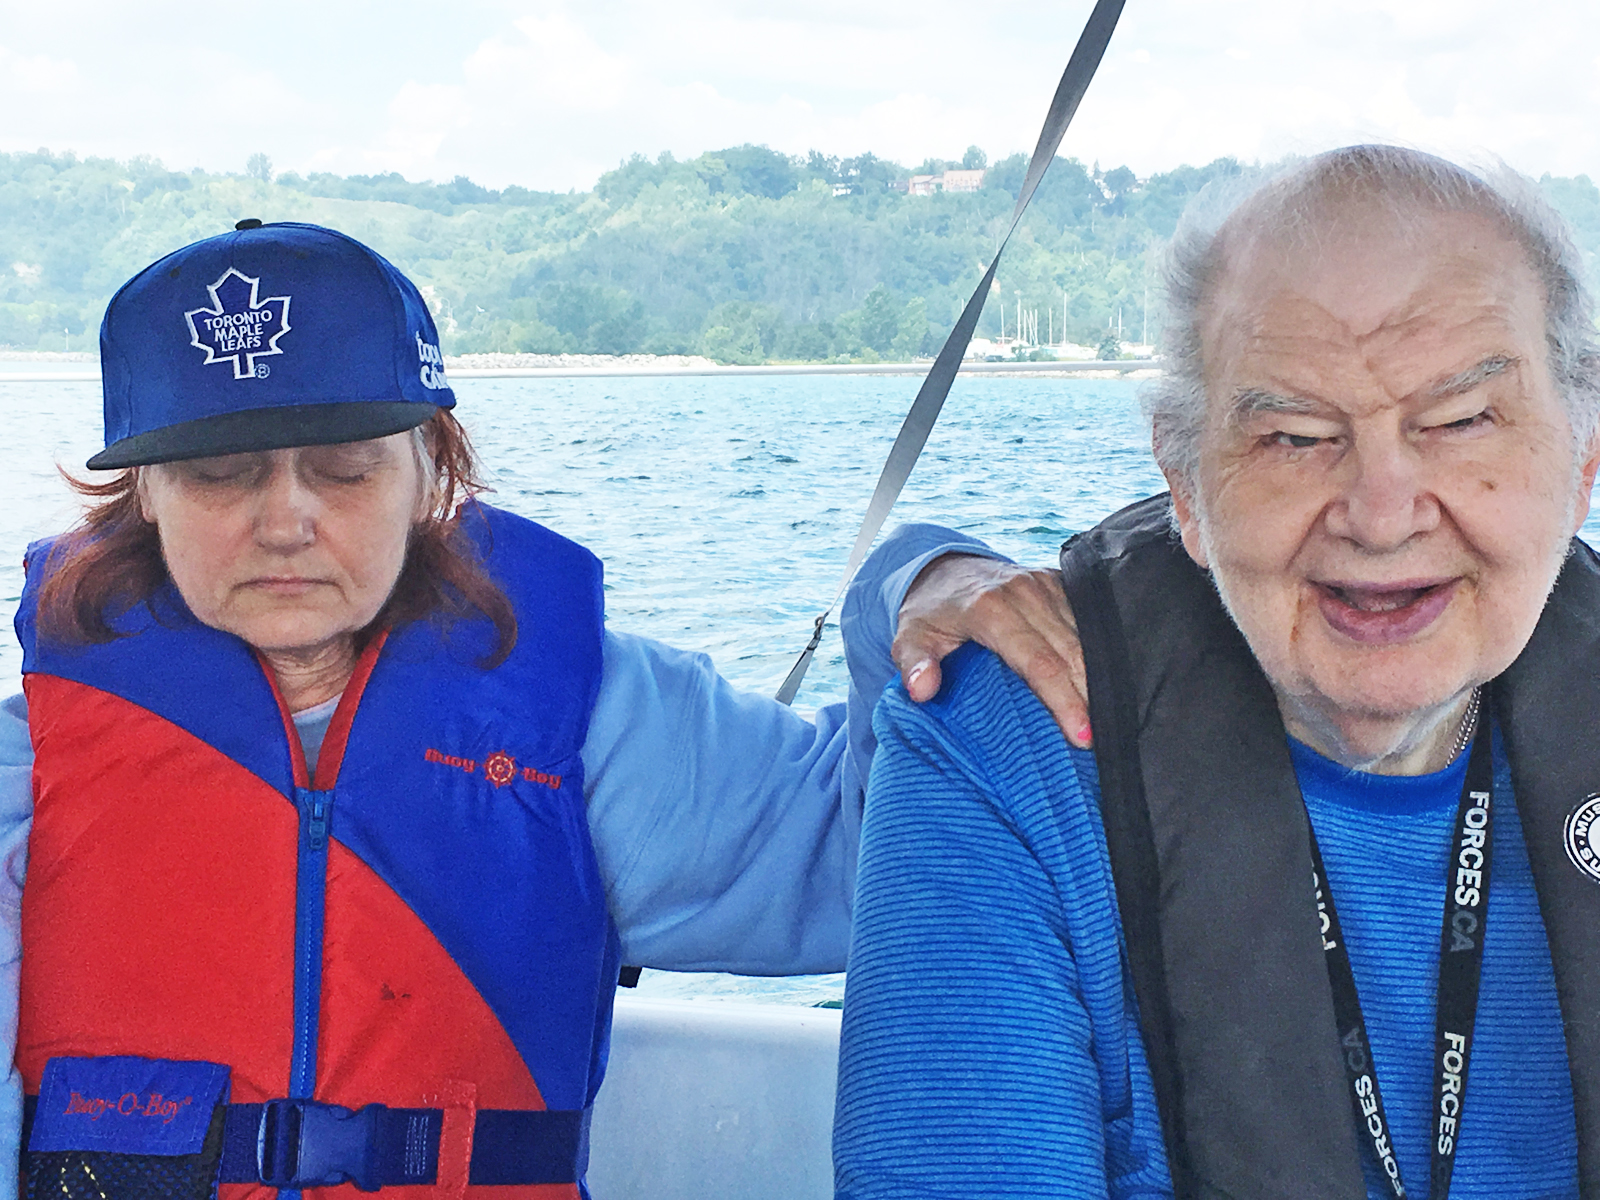 Two residents on the boat enjoying sailing